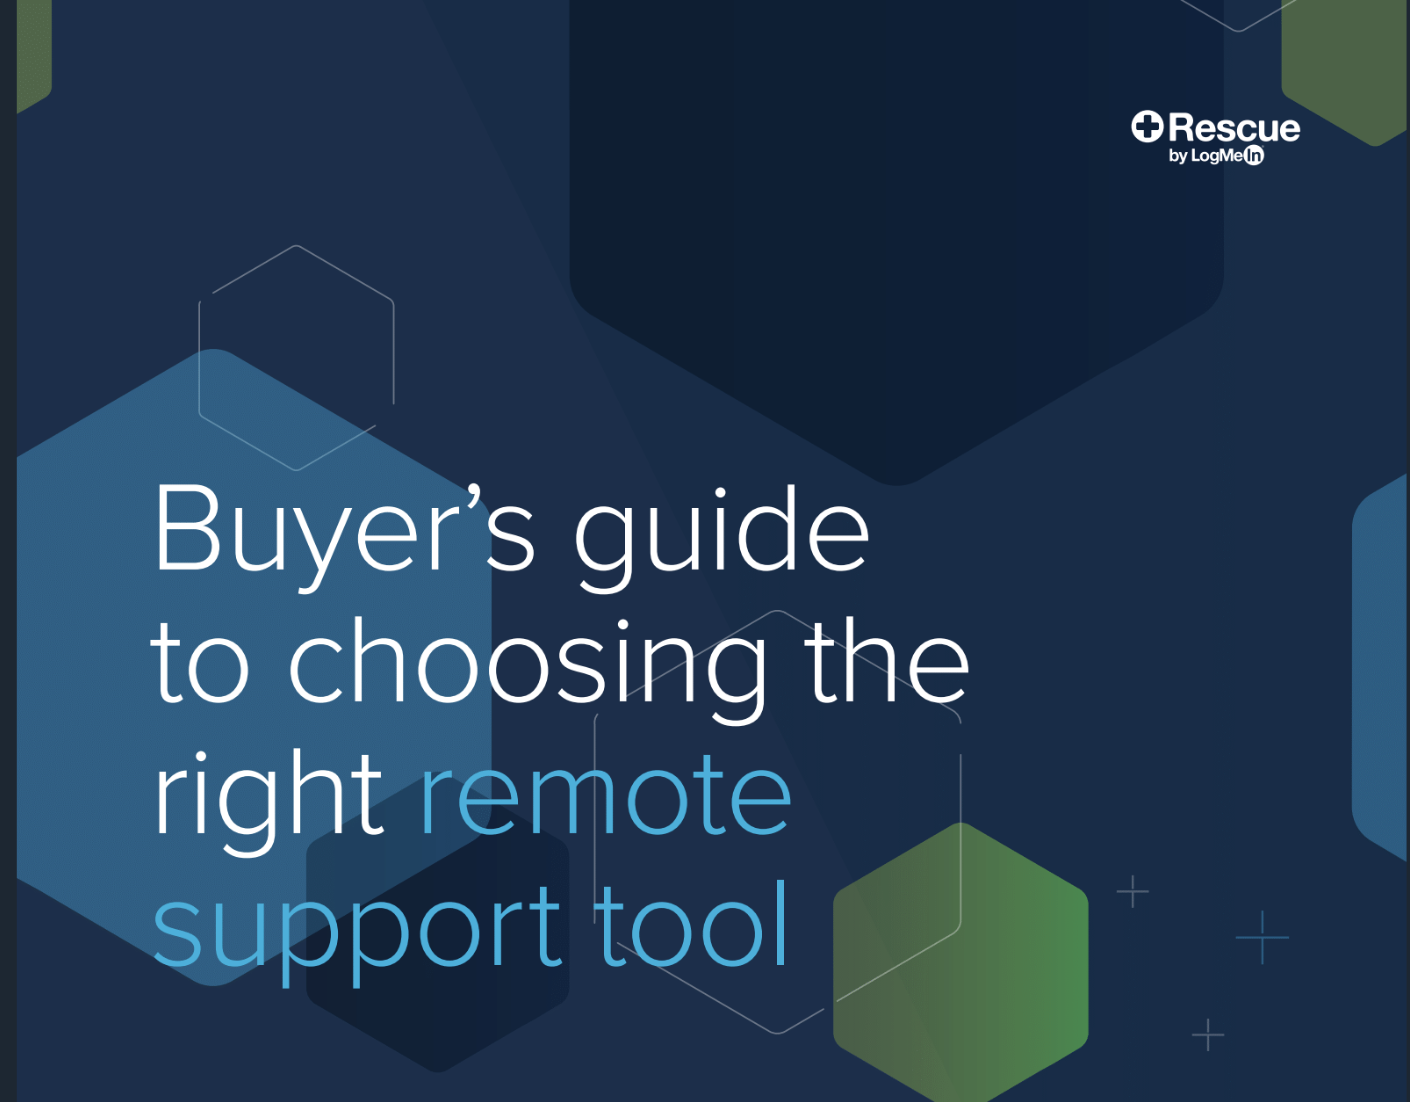 -buyers-guide-to-choosing-the-right-remote-support-tool-wh